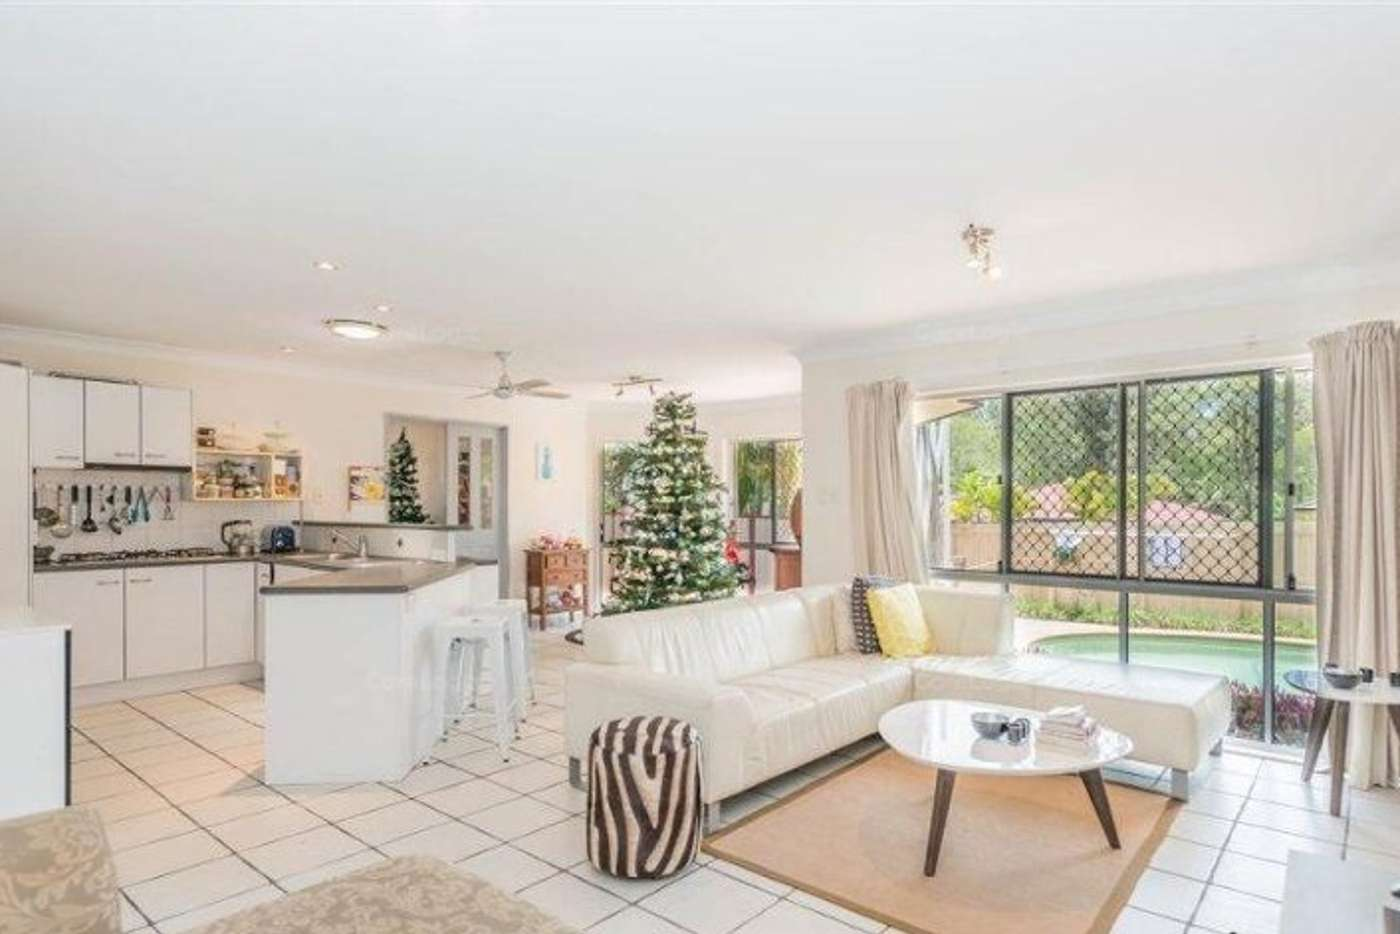 Fifth view of Homely house listing, 2 Sirec Way, Burleigh Heads QLD 4220